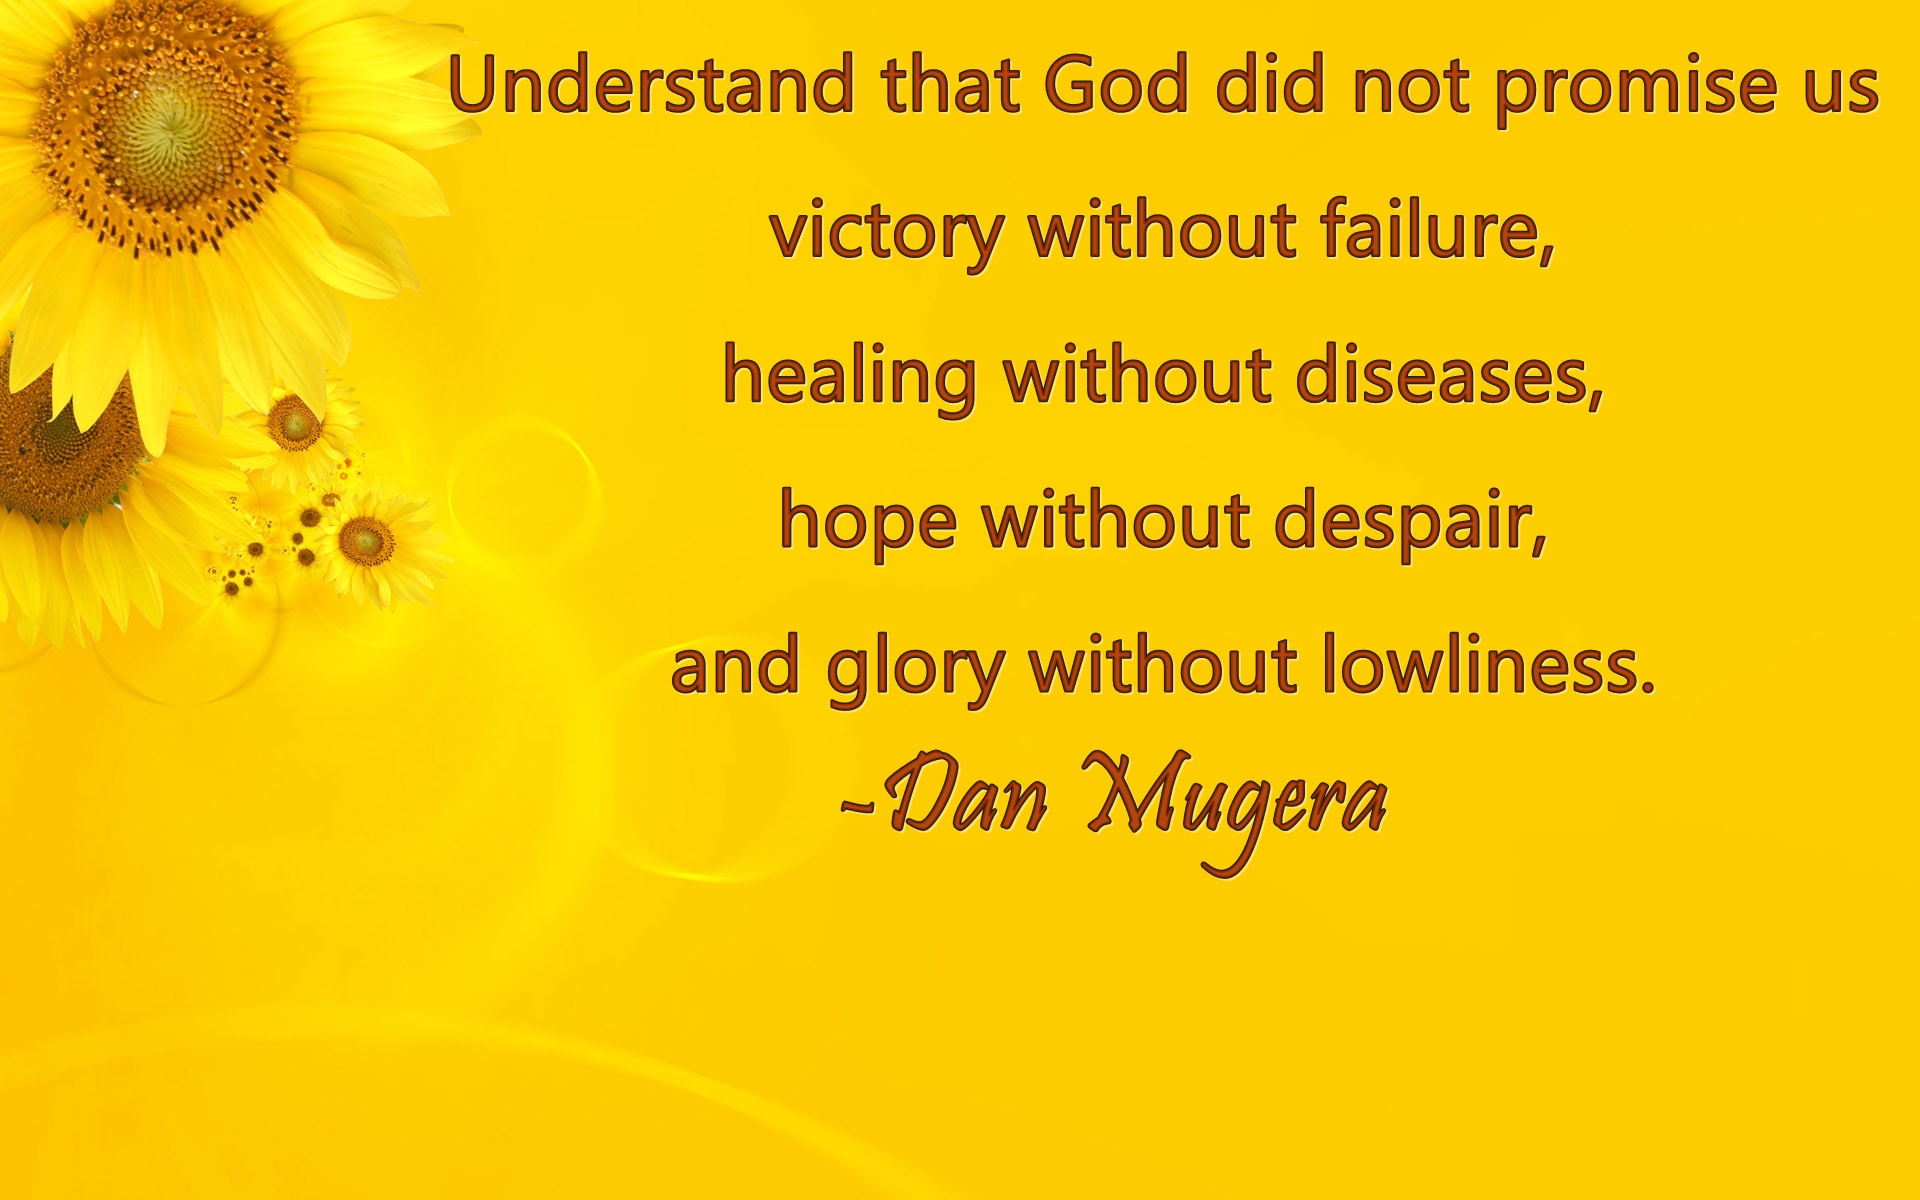 Quotes by Dan Mugera, life quotes, hard times quotes